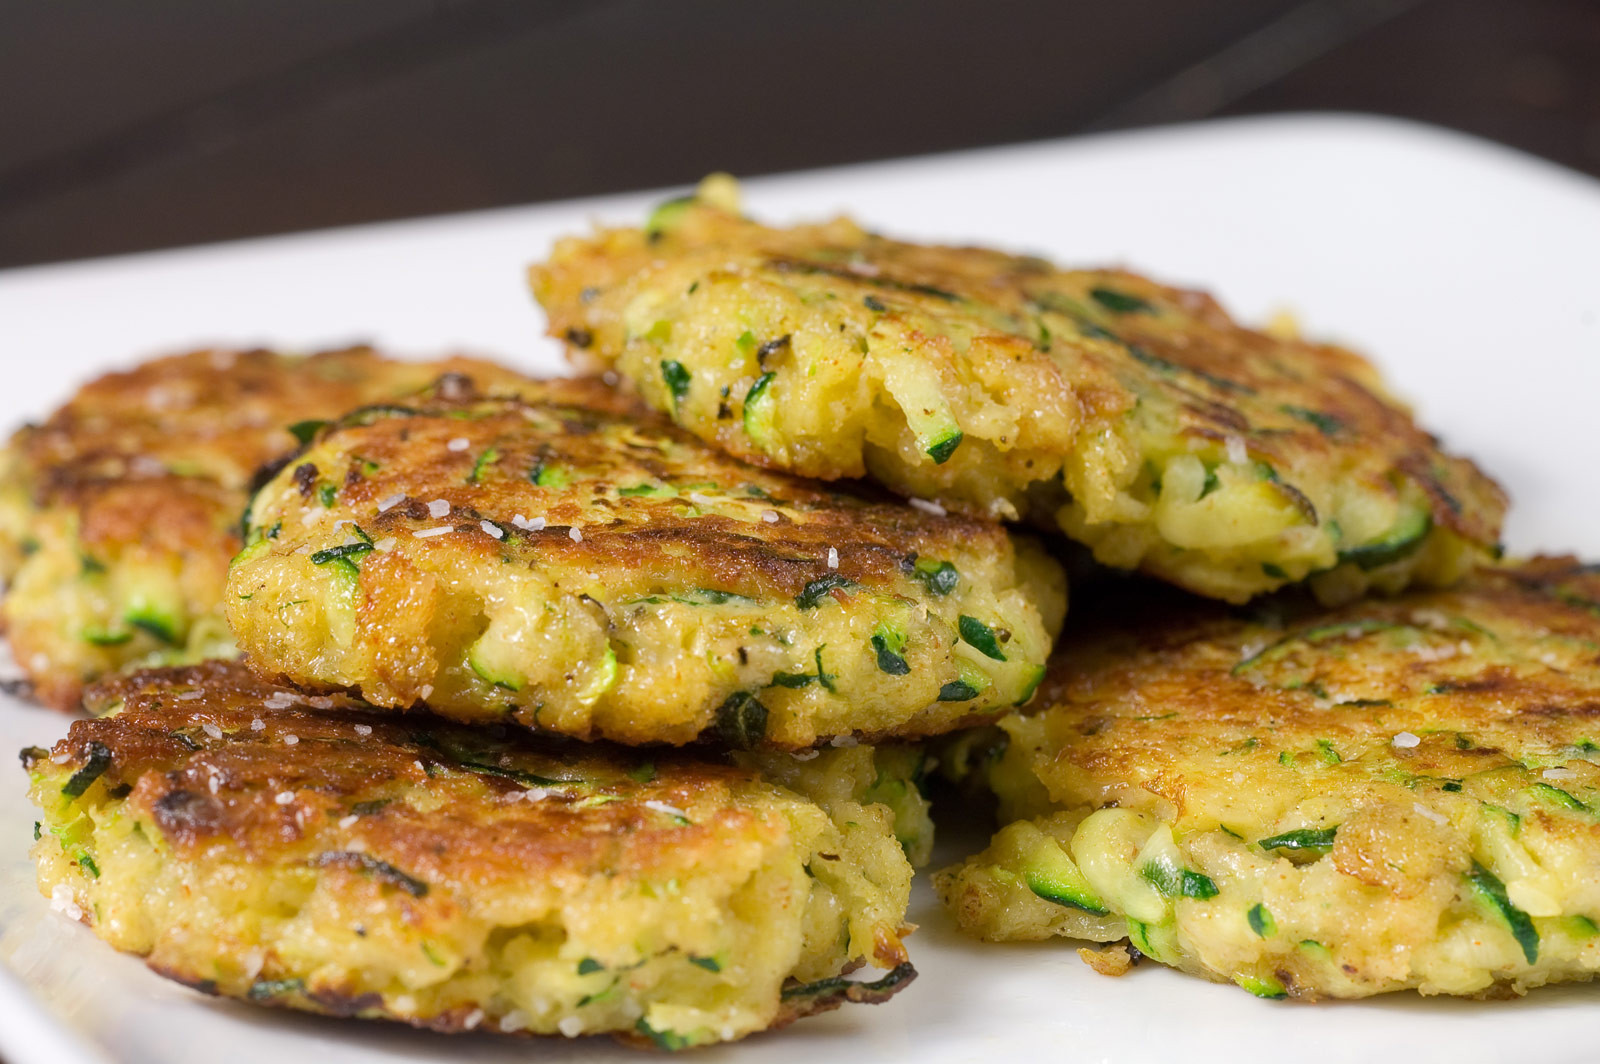 Zucchini Cakes Recipes  Zucchini Cakes – Mouse in My Pocket